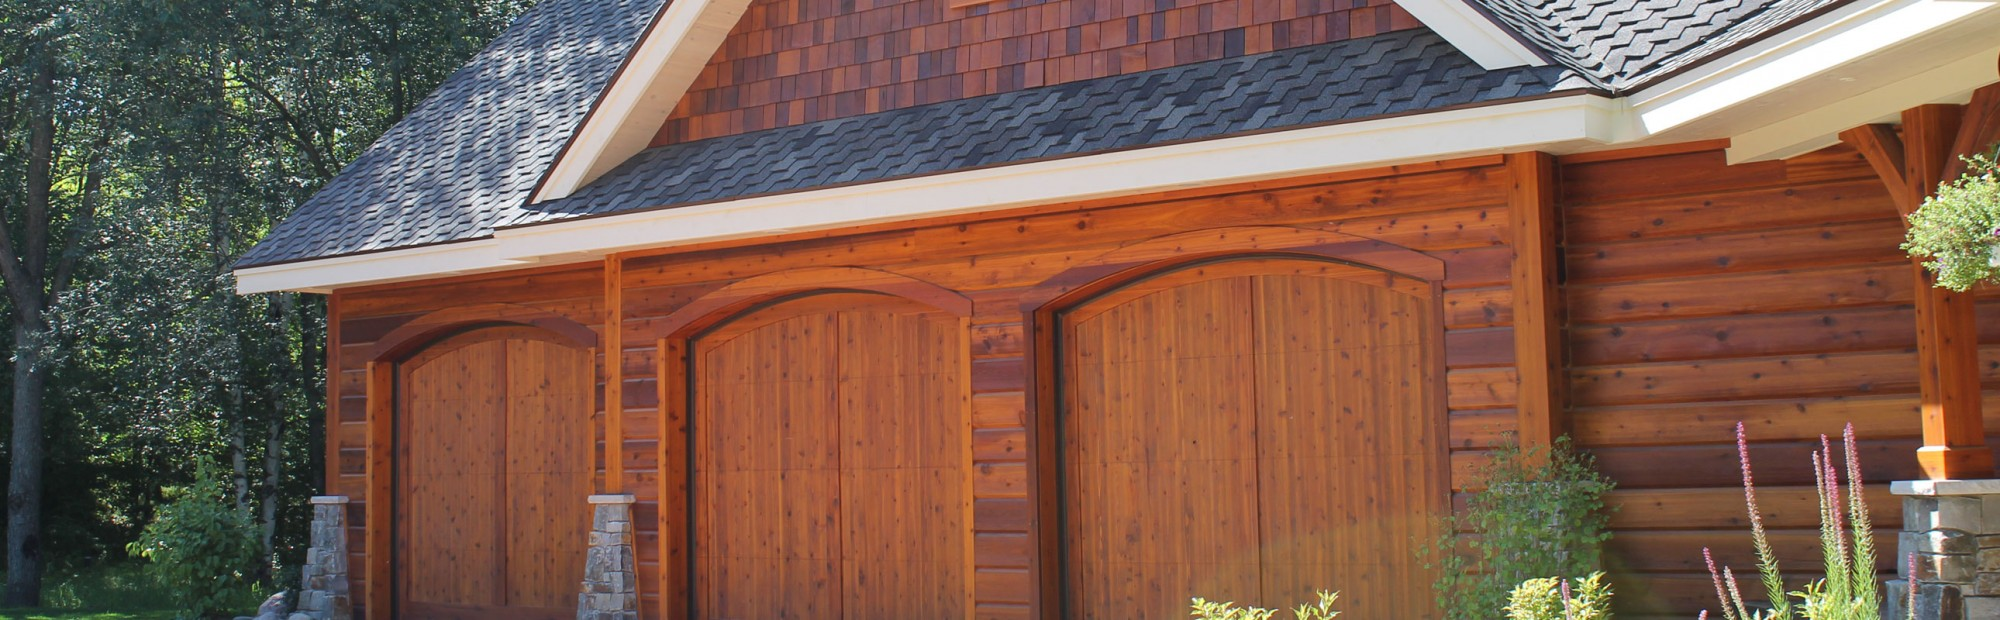 Tongue And Groove Exterior Wood Siding Cool Log Siding With Tongue And Groove Exterior Wood